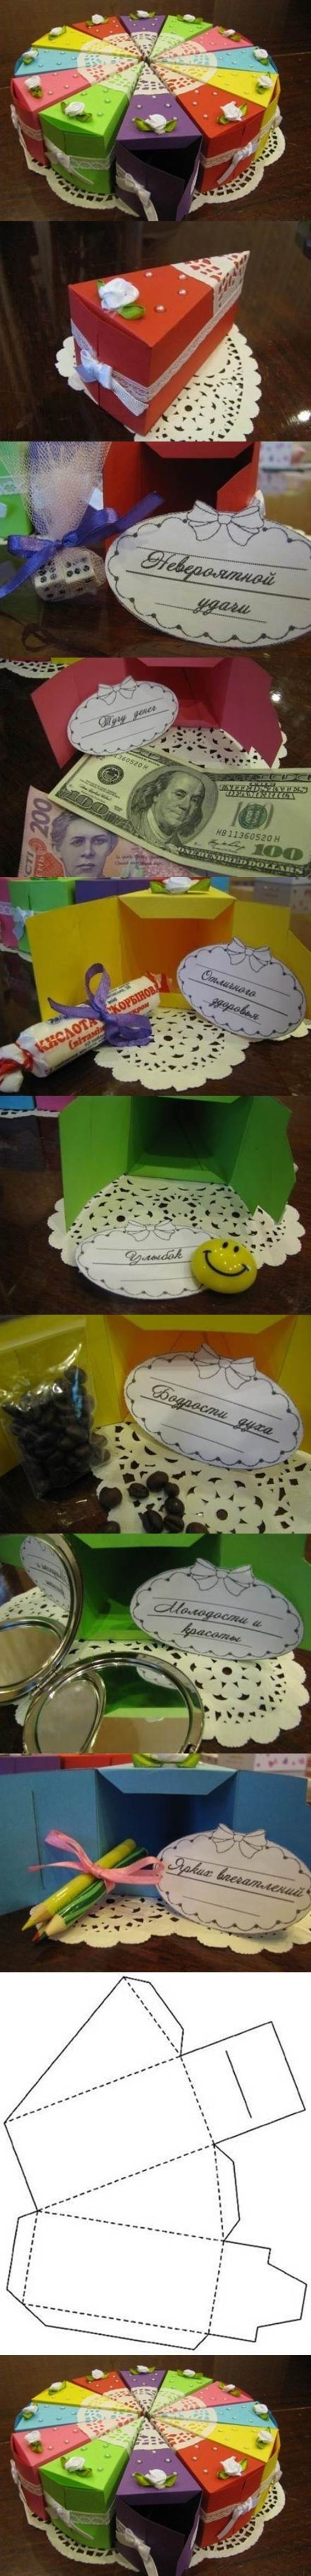 DIY Cake Shaped Gift Boxes iCreativeIdeas.com